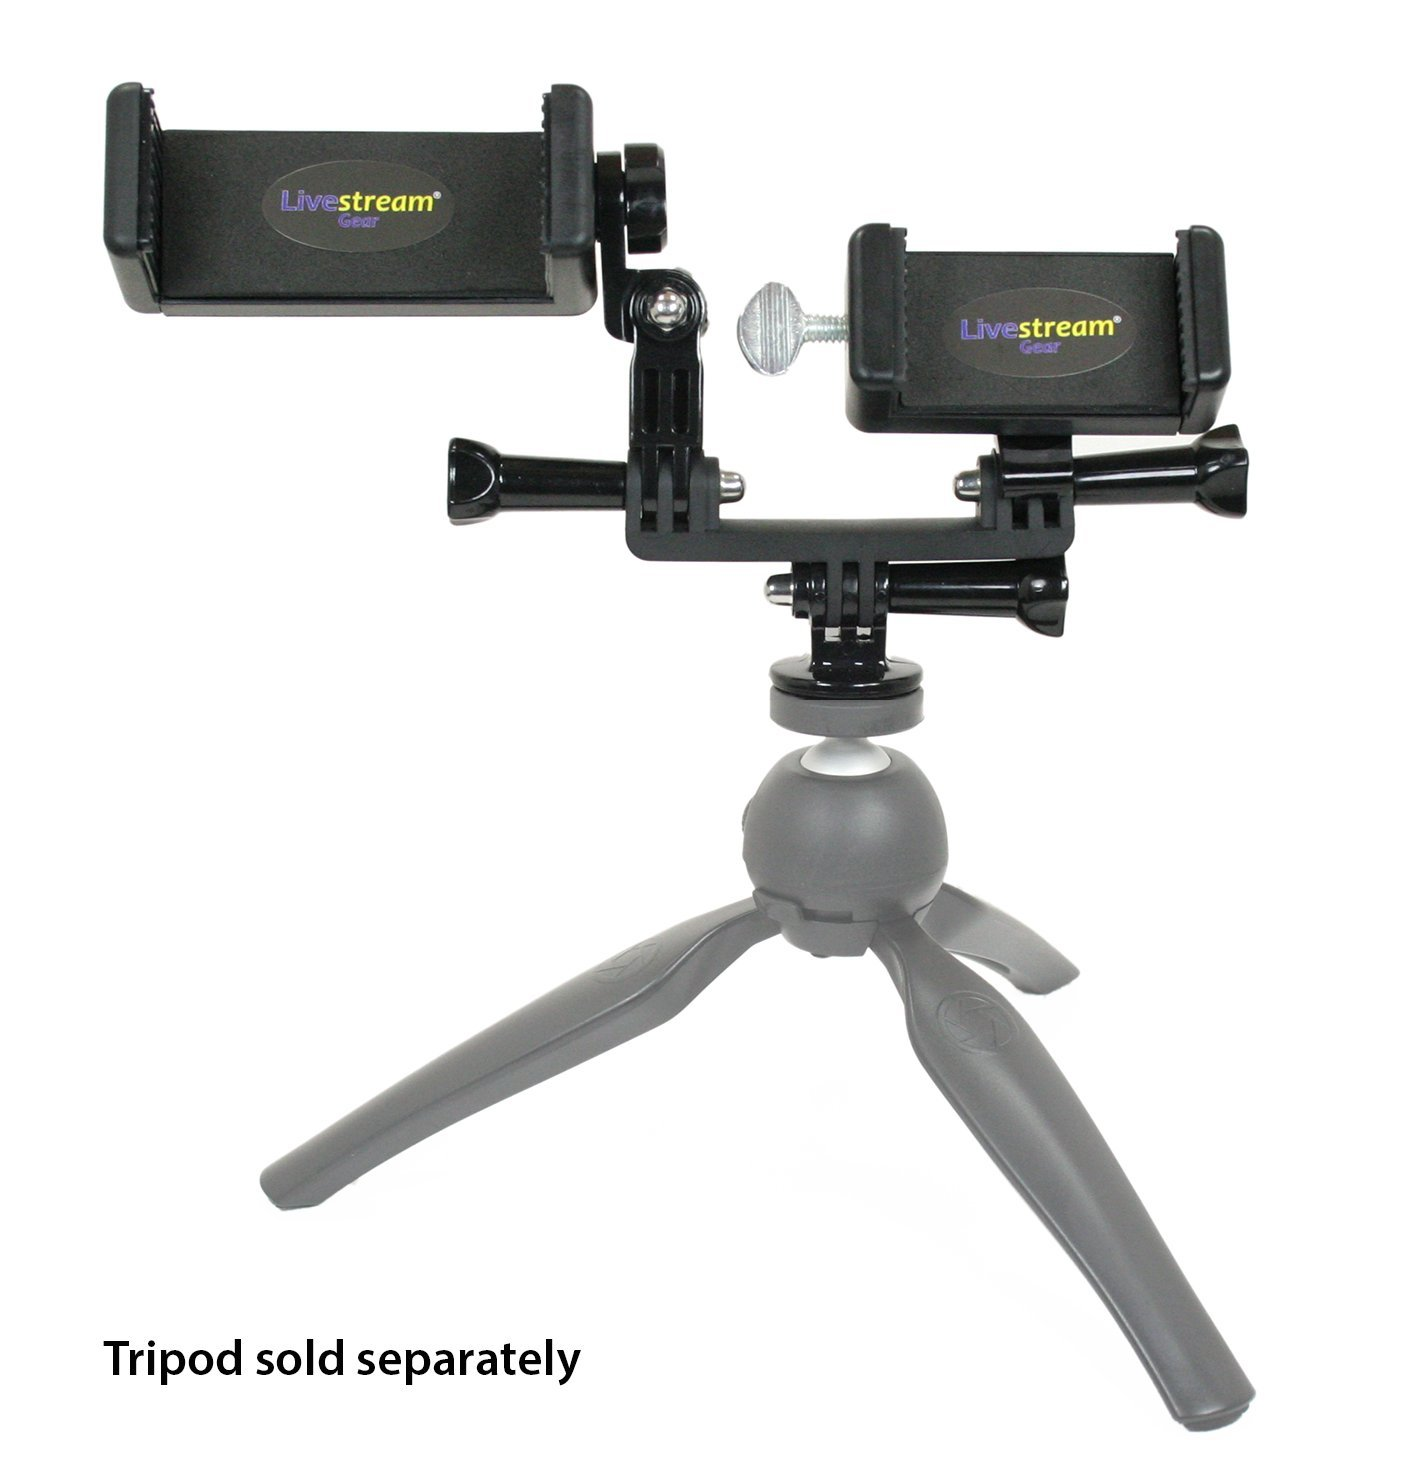 Livestream Gear® - PHABLET Chest Mount & Gooseneck Setup for Streaming or Video, to Fit Large Sized Devices like iPhone 6 Plus, Galaxy Note, + Pokemon Go. (Phablet Chest Mount)